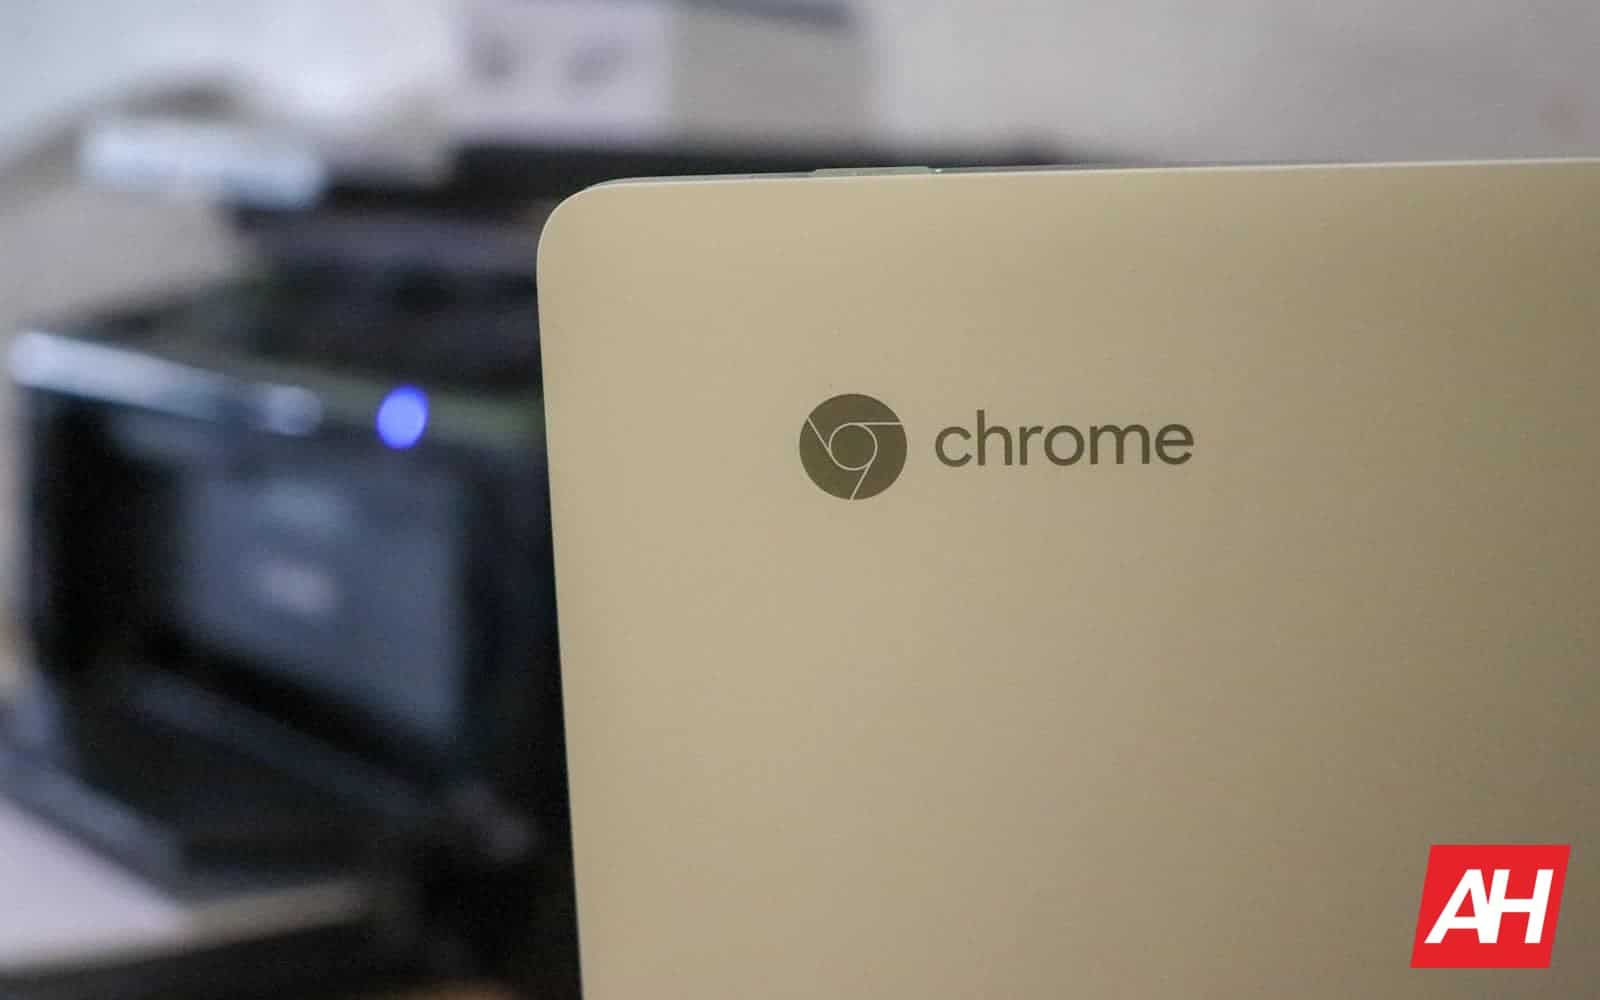 Chrome OS Print How To 2 AH 2019